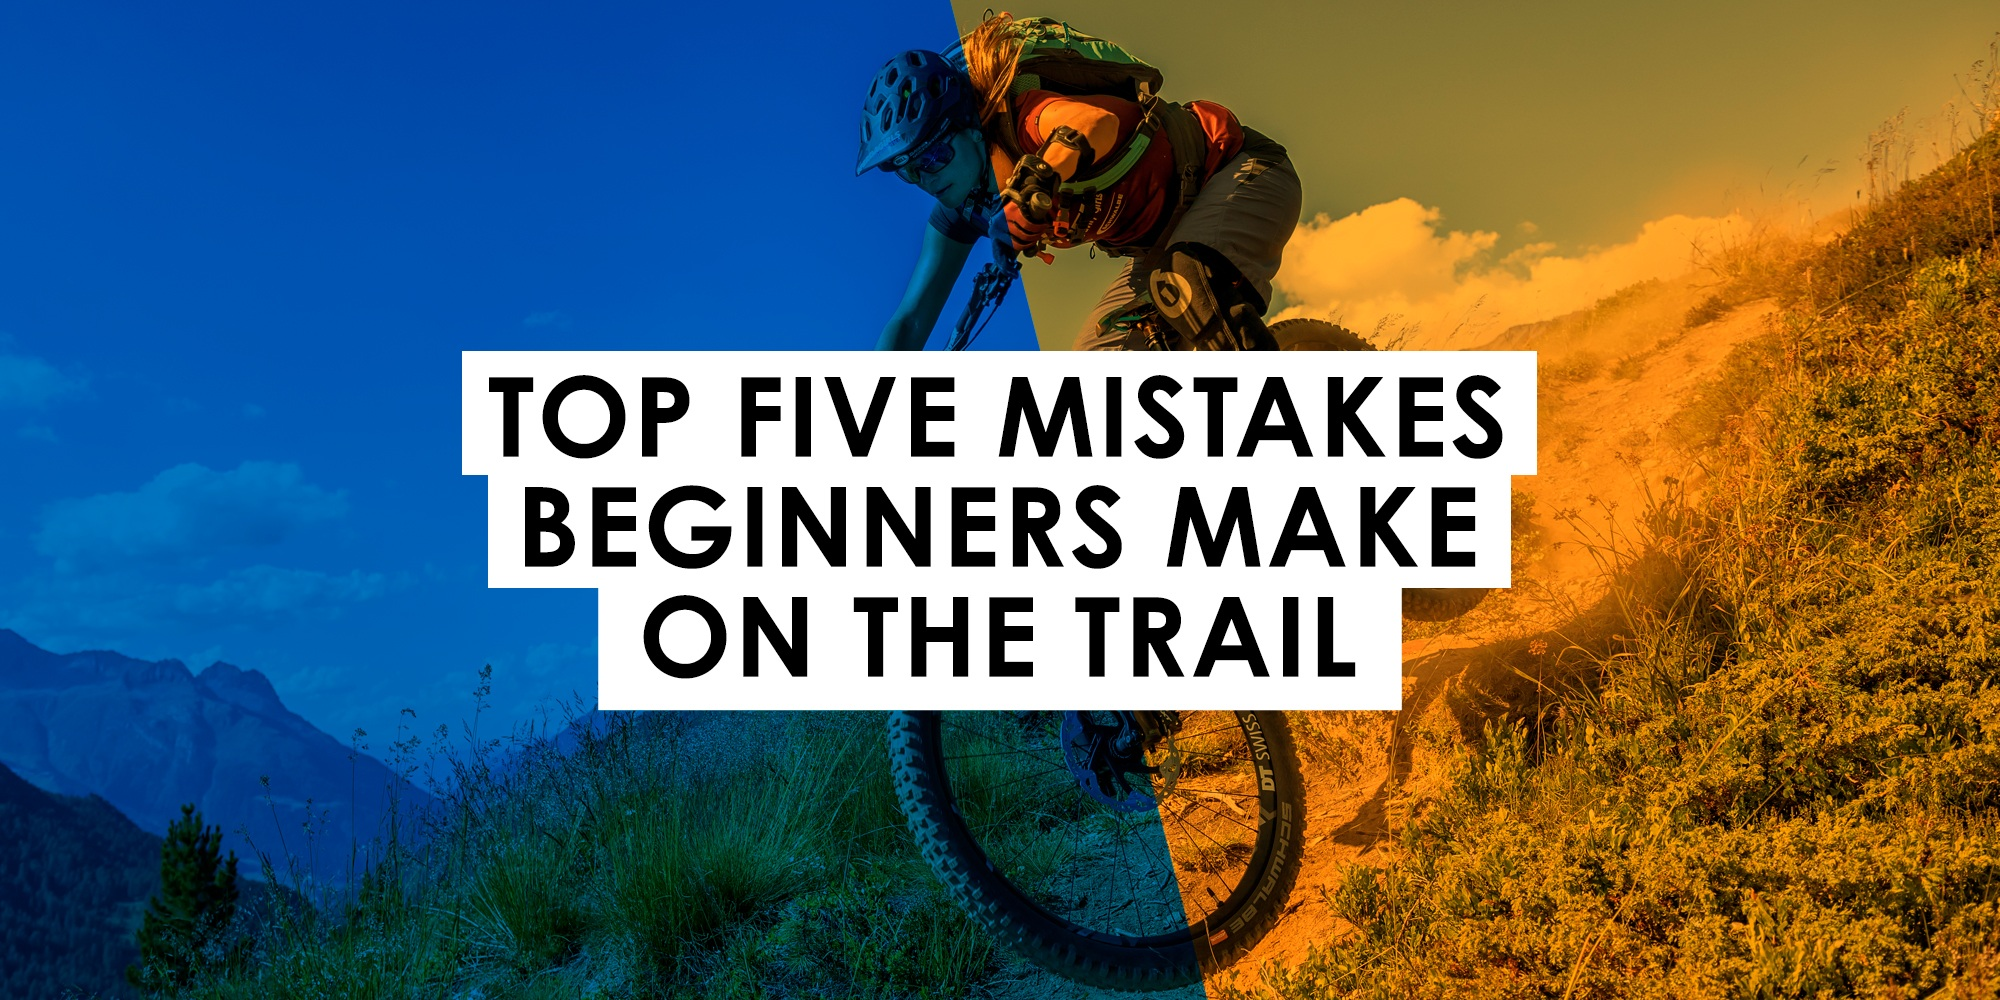 Top Five Mistakes Beginners Make on the Trail